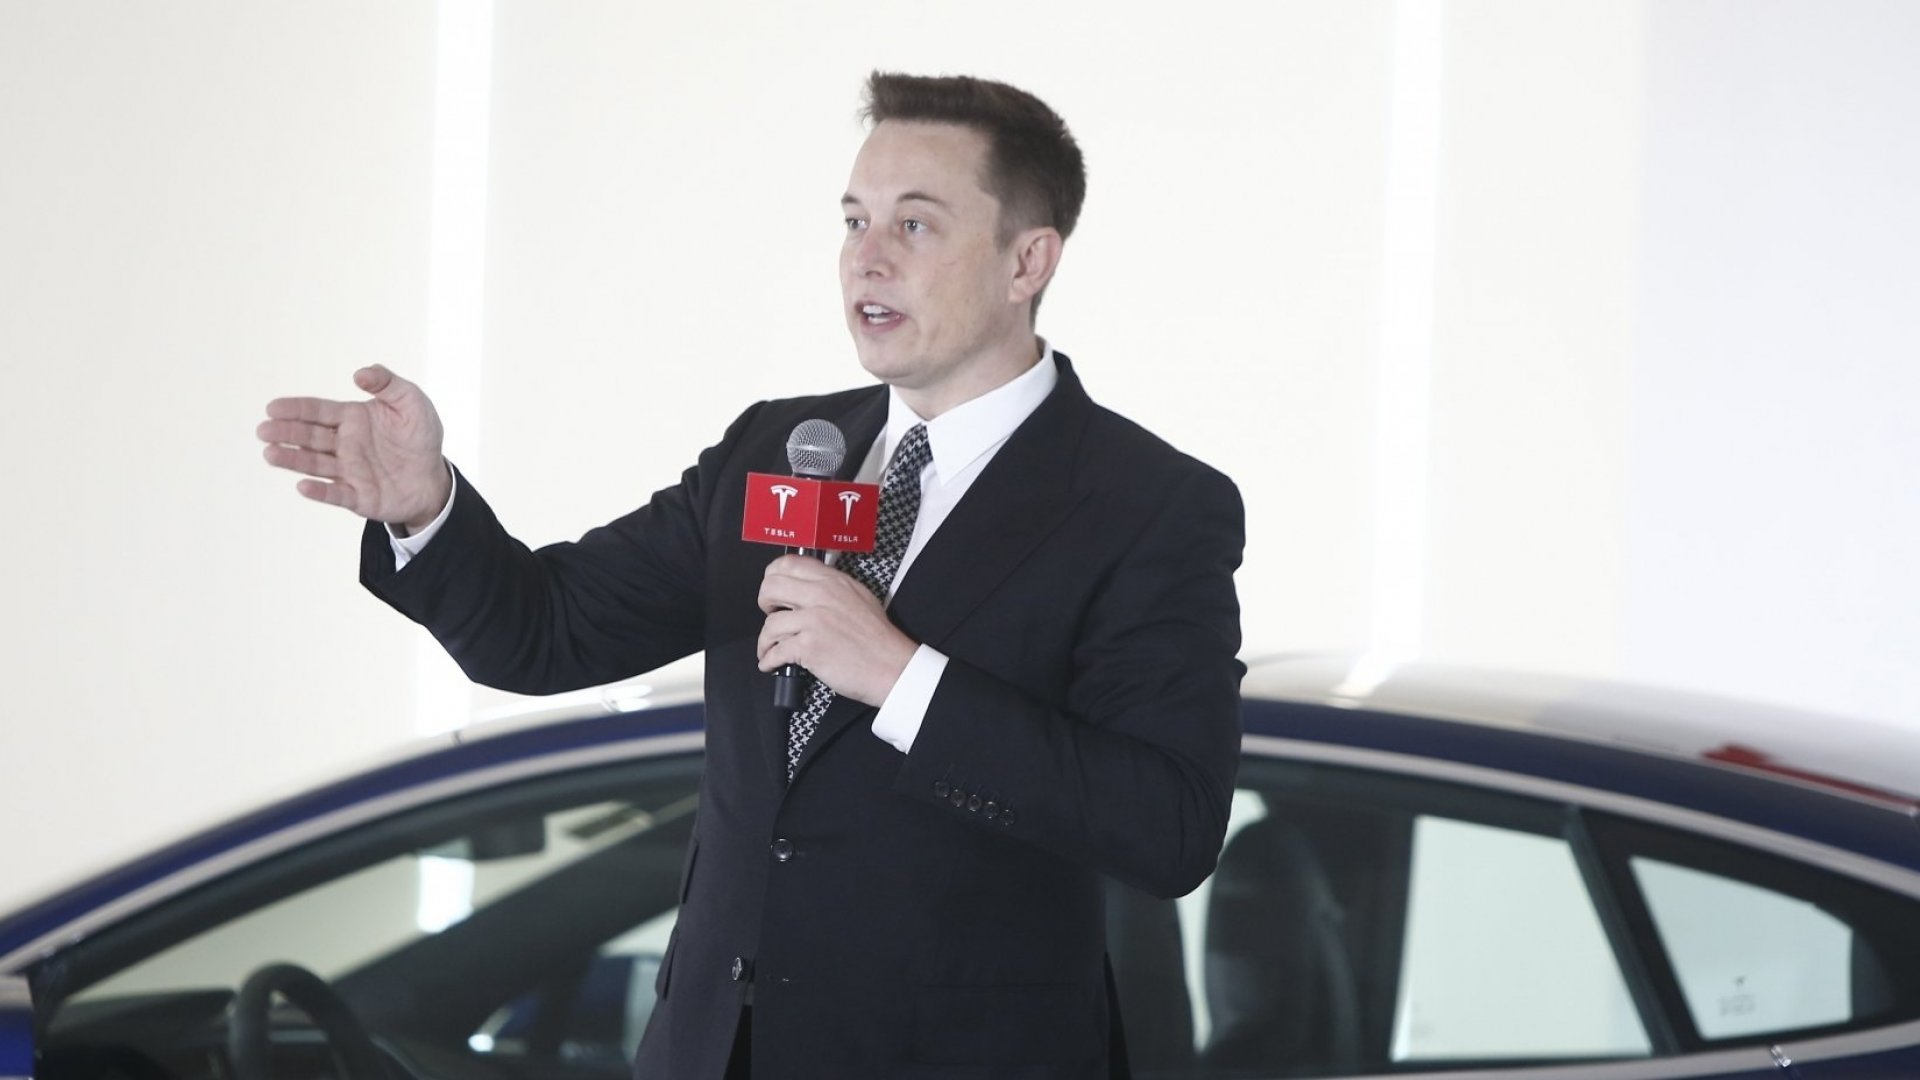 Elon Musk Removes Software Throttling From Florida Tesla Models to Help Drivers Escape Irma